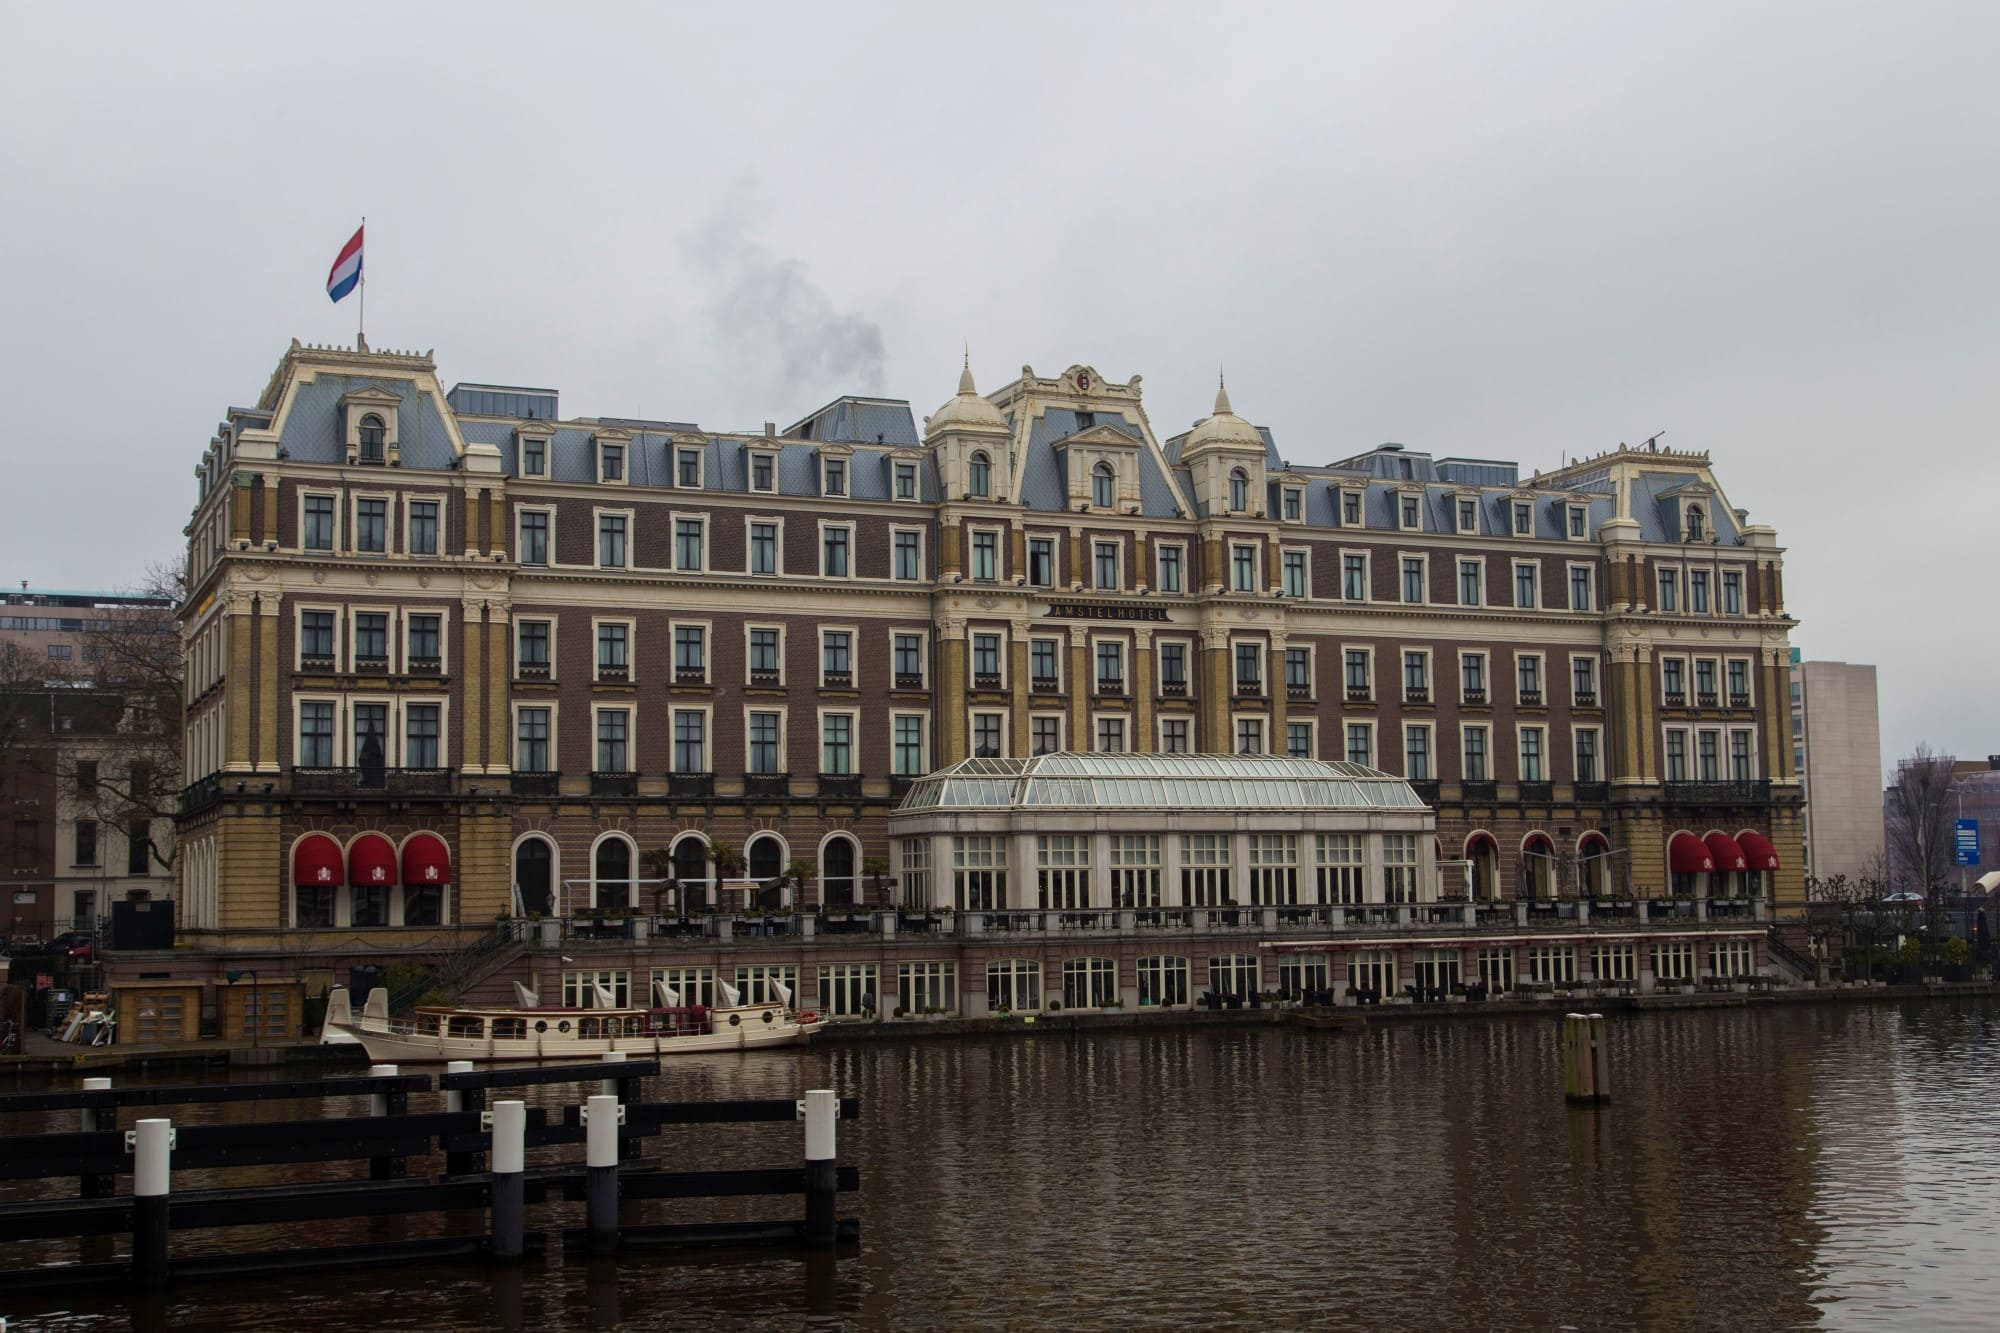 Amstel Hotel (Intercontinental) Amsterdam, Netherlands